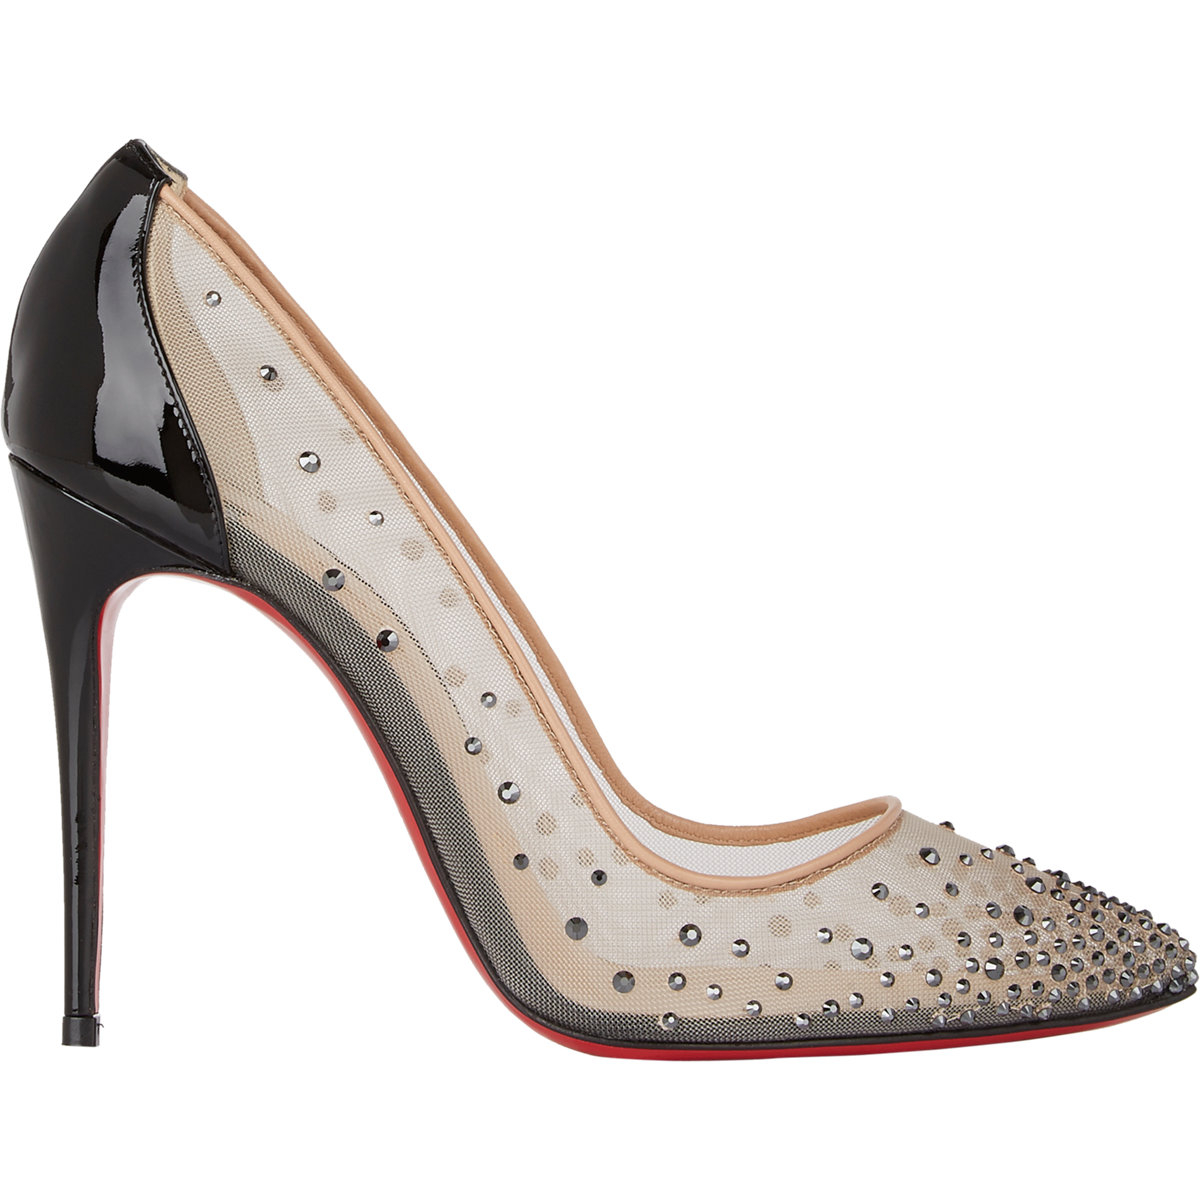 online retailer ade71 f0194 Christian Louboutin Crystal-Embellished Follies Strass Pumps ...